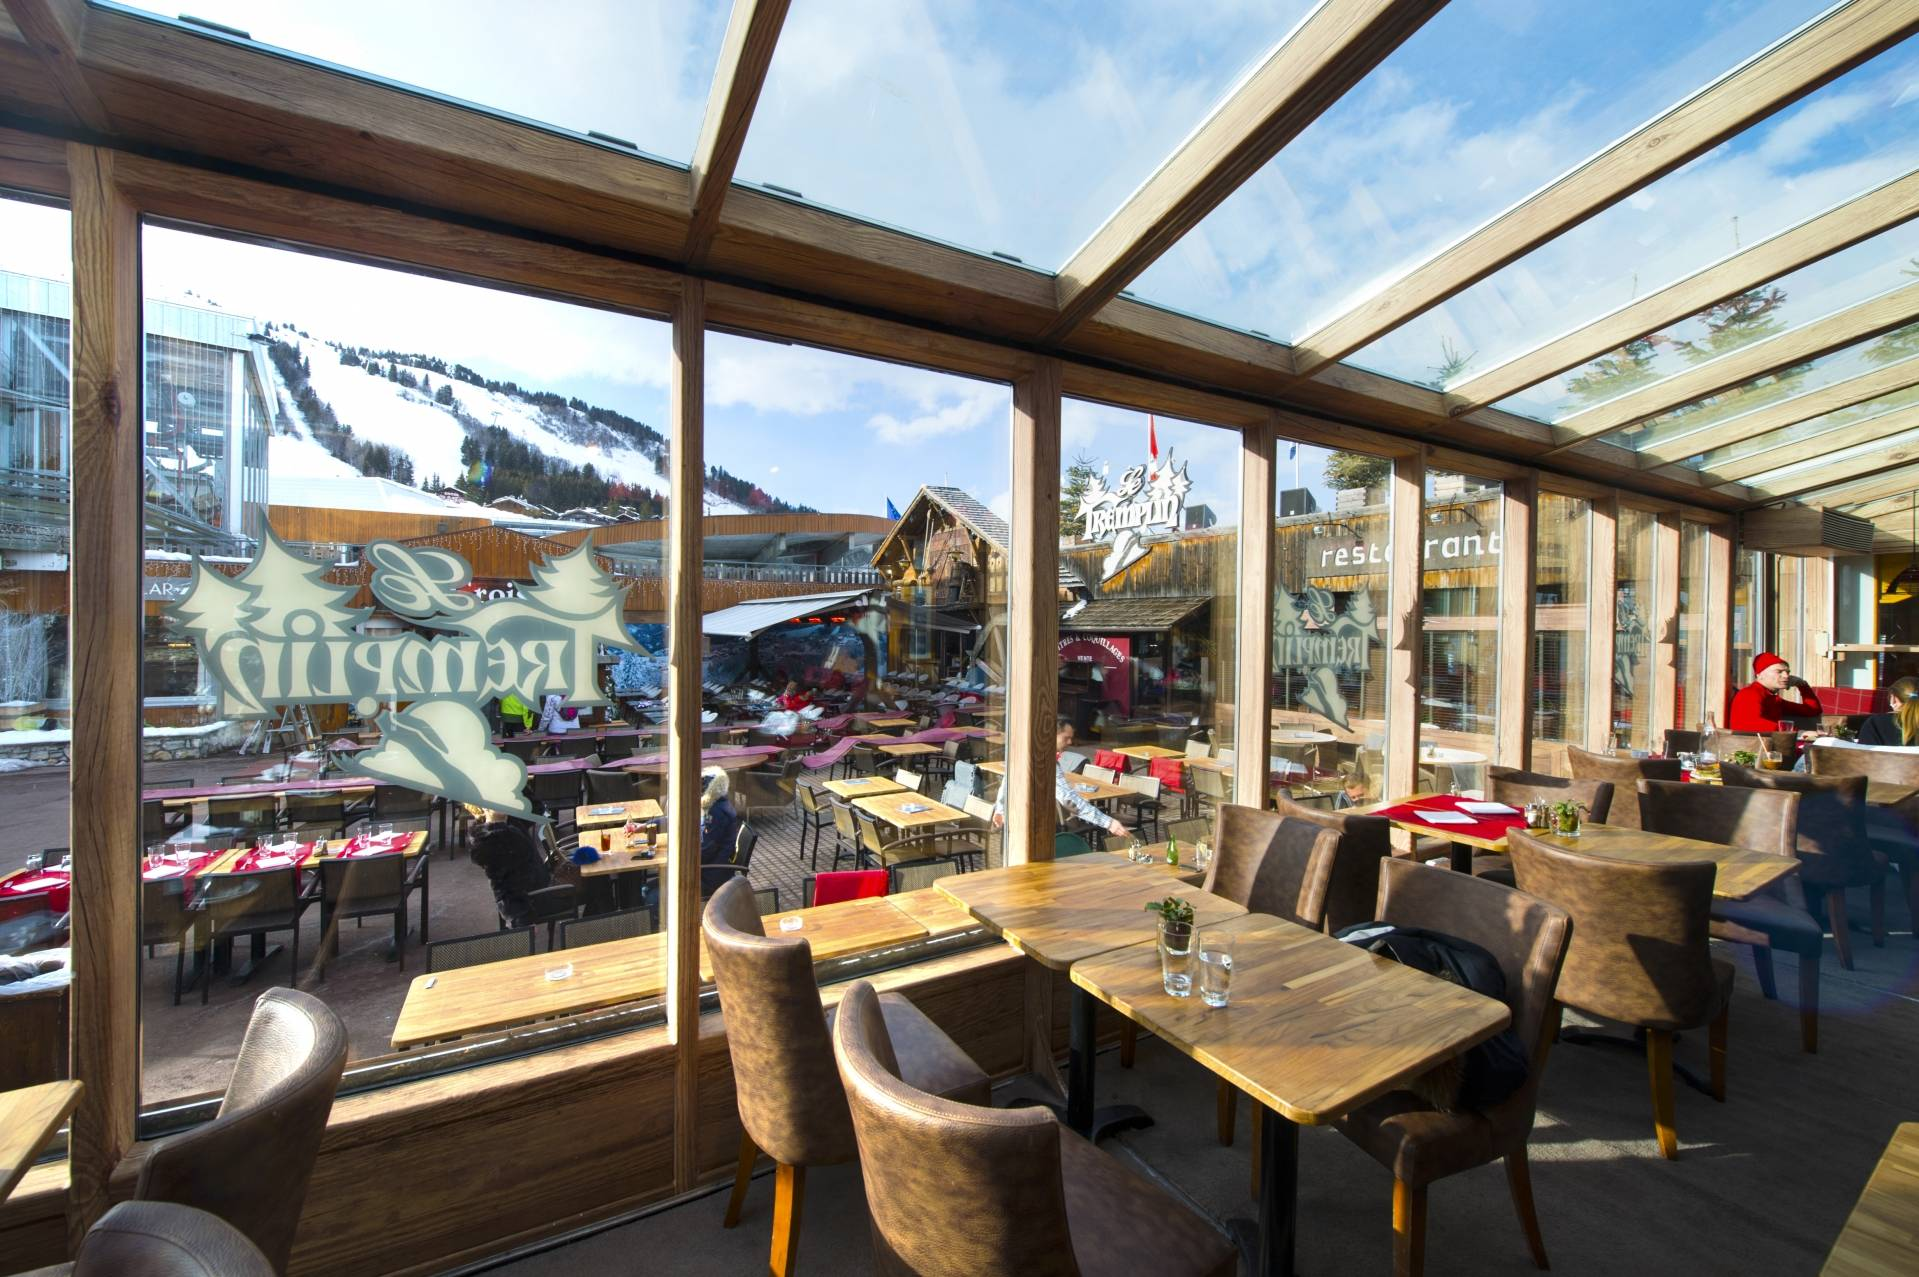 Restaurant Le Tremplin, Courchevel (73) © RIOU Glass | Sarah Vervisch -